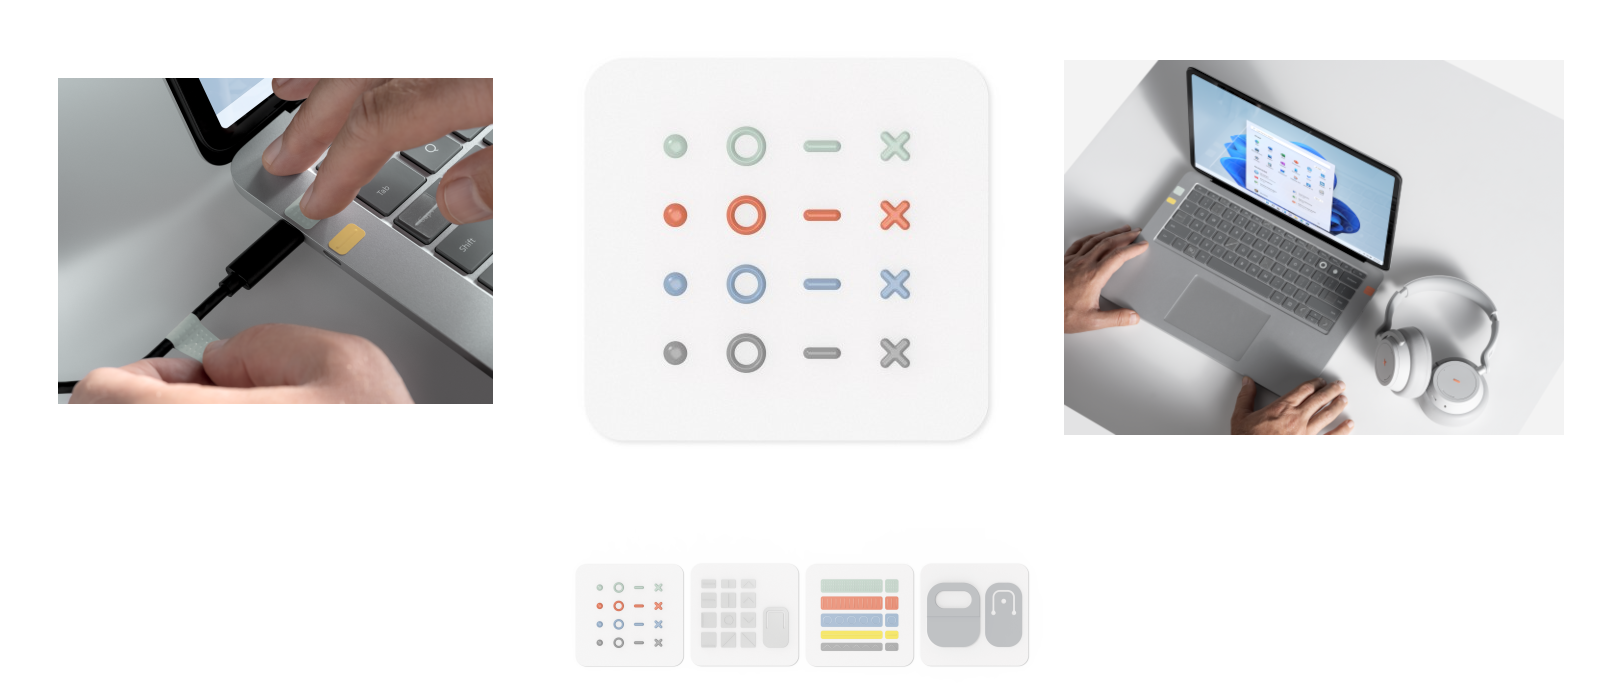 Different images show the Surface Adaptive Kit in detail and in use.